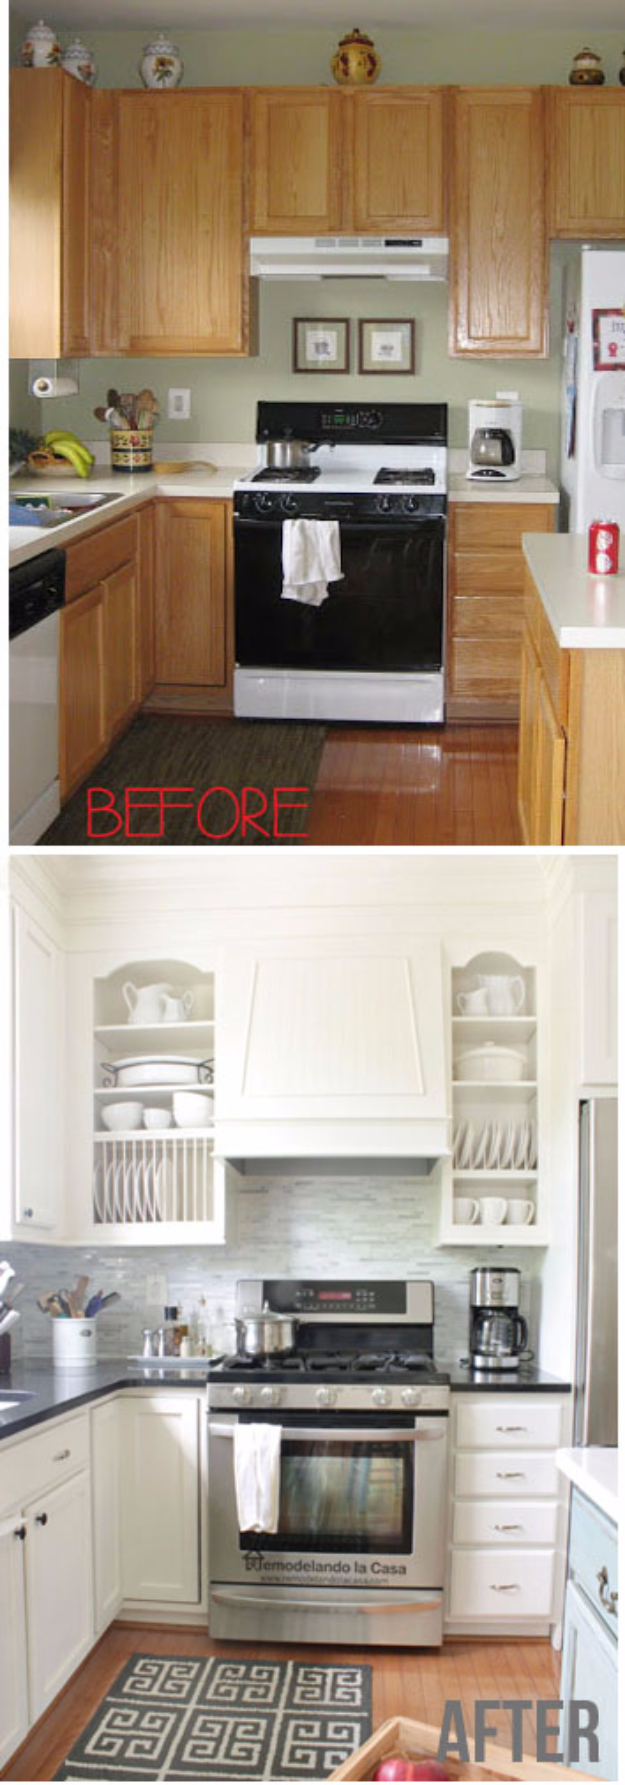 37 brilliant diy kitchen makeover ideas page 3 of 8 - Kitchen cabinet diy makeover ...